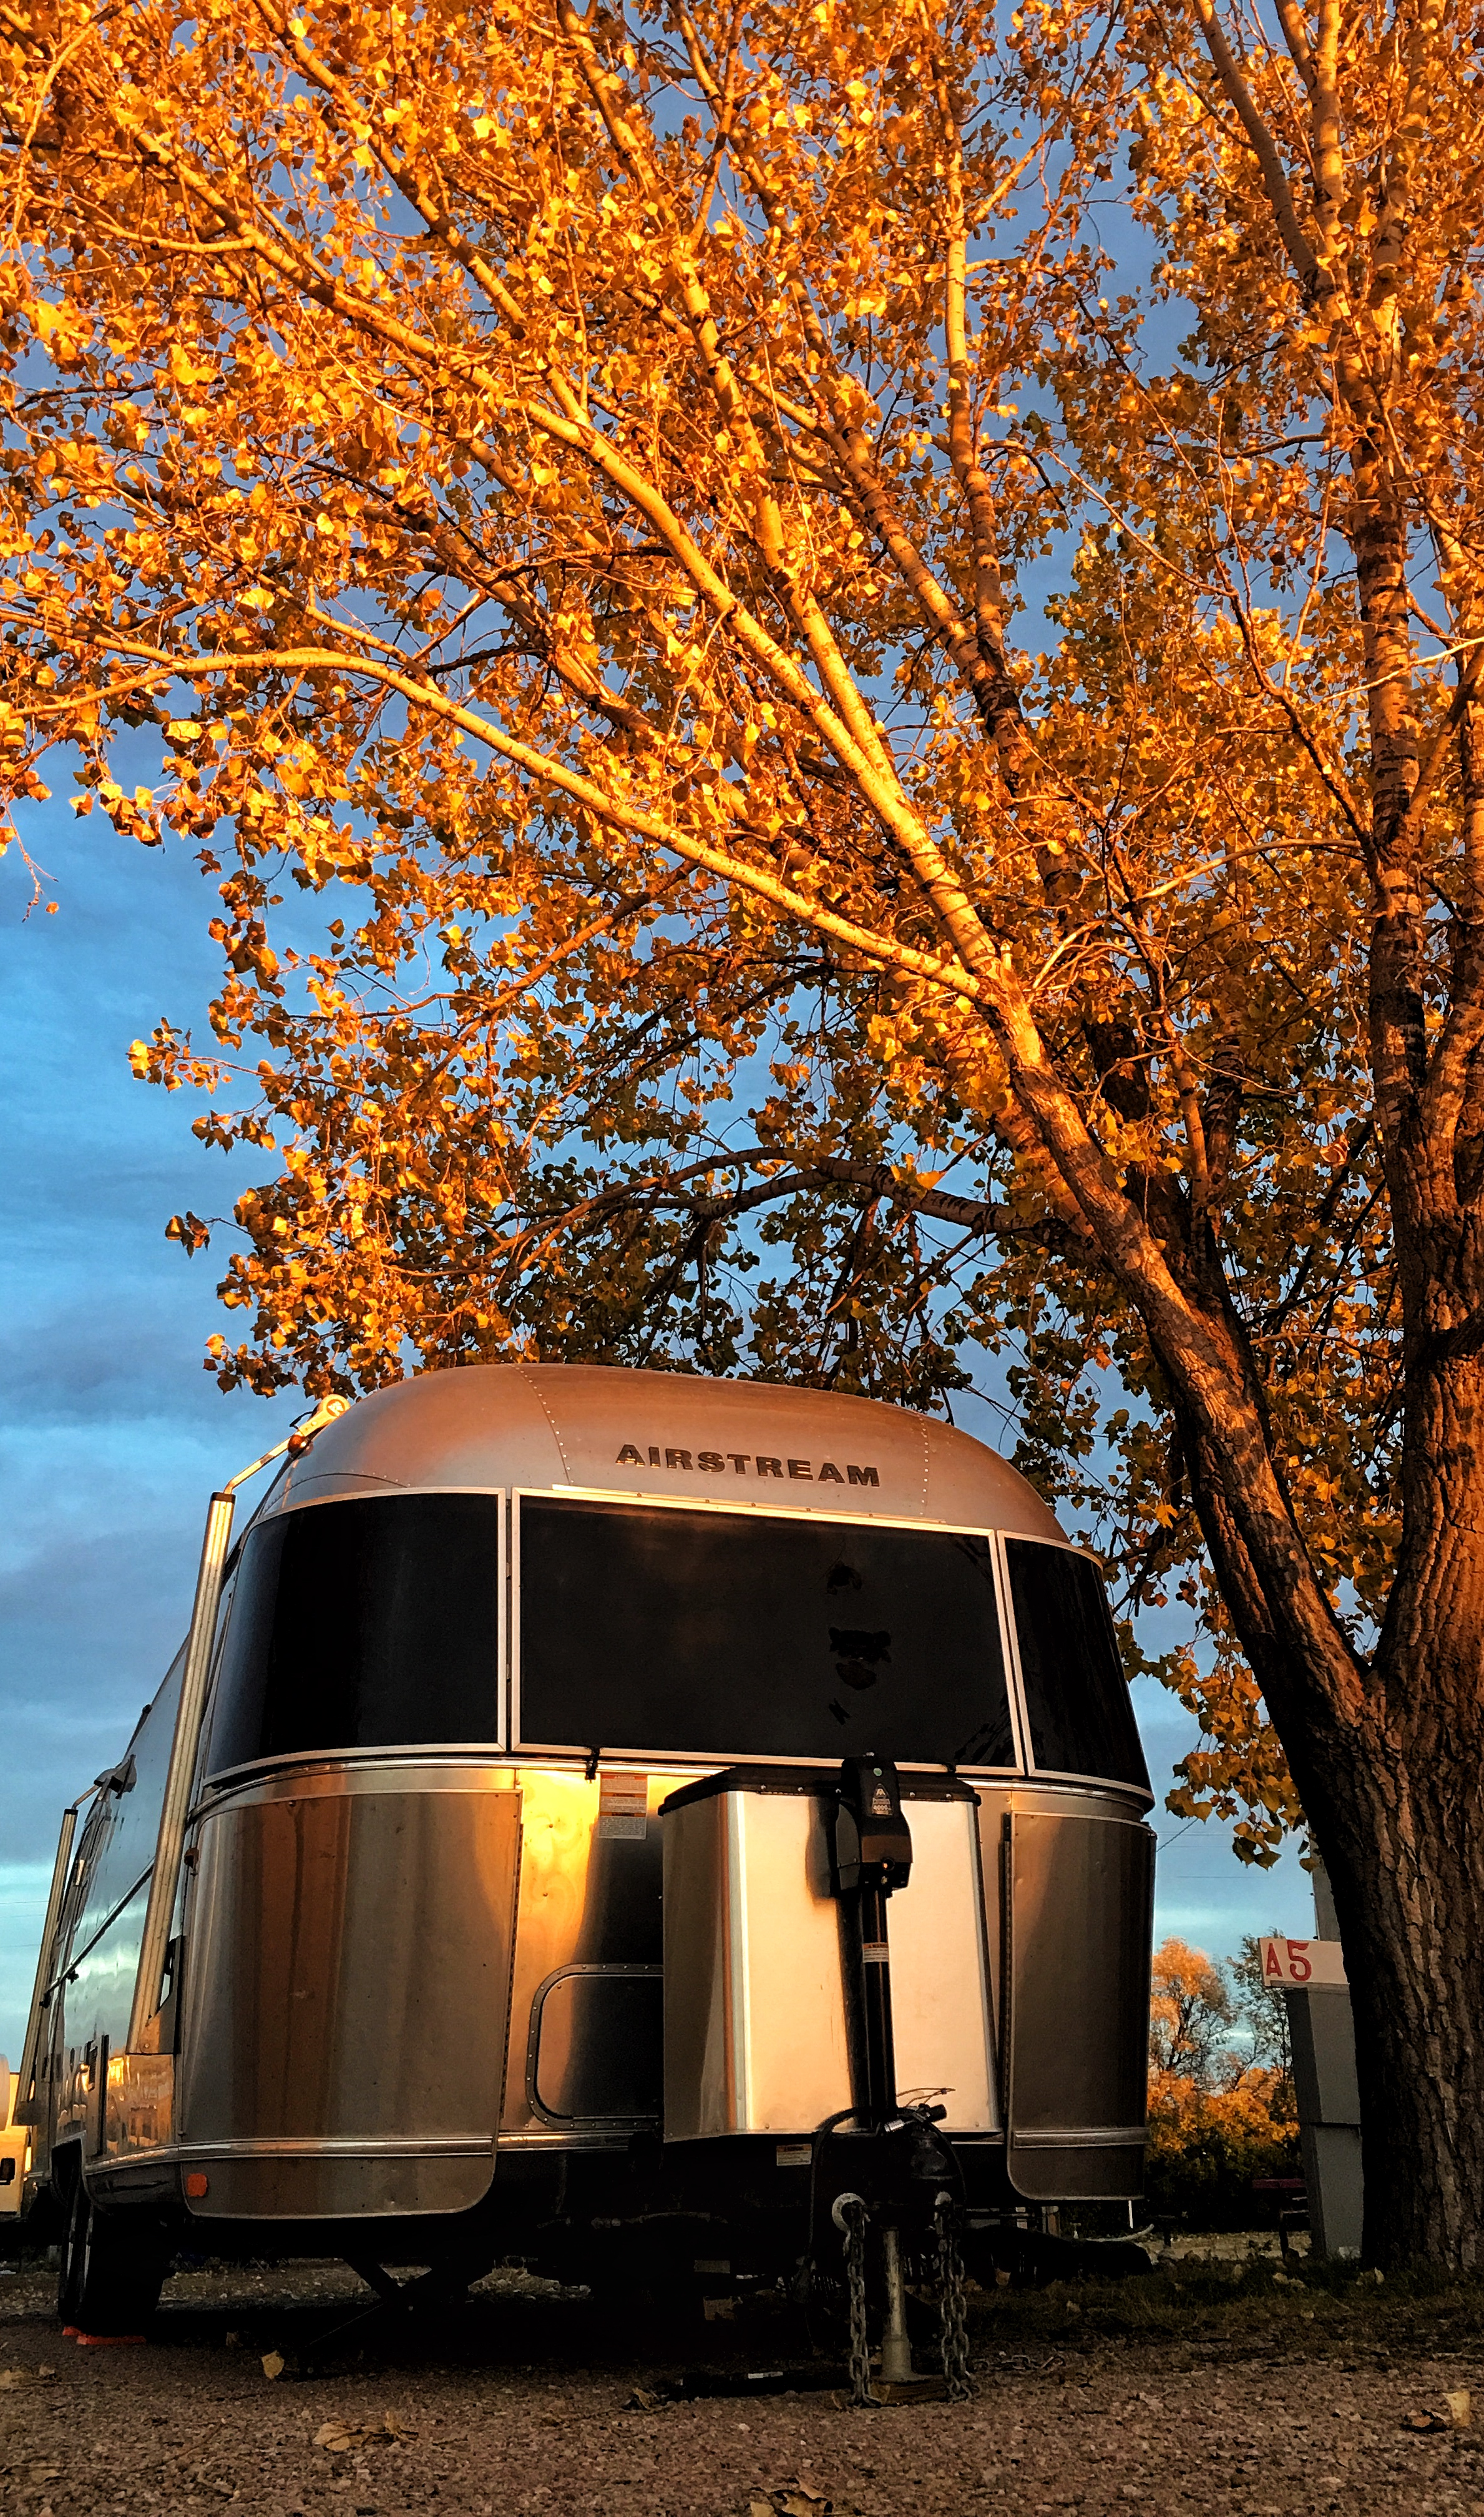 Wally the Airstream under the golden sun in Badlands National Park in beautiful South Dakota. Photo credit: Stefanie Payne